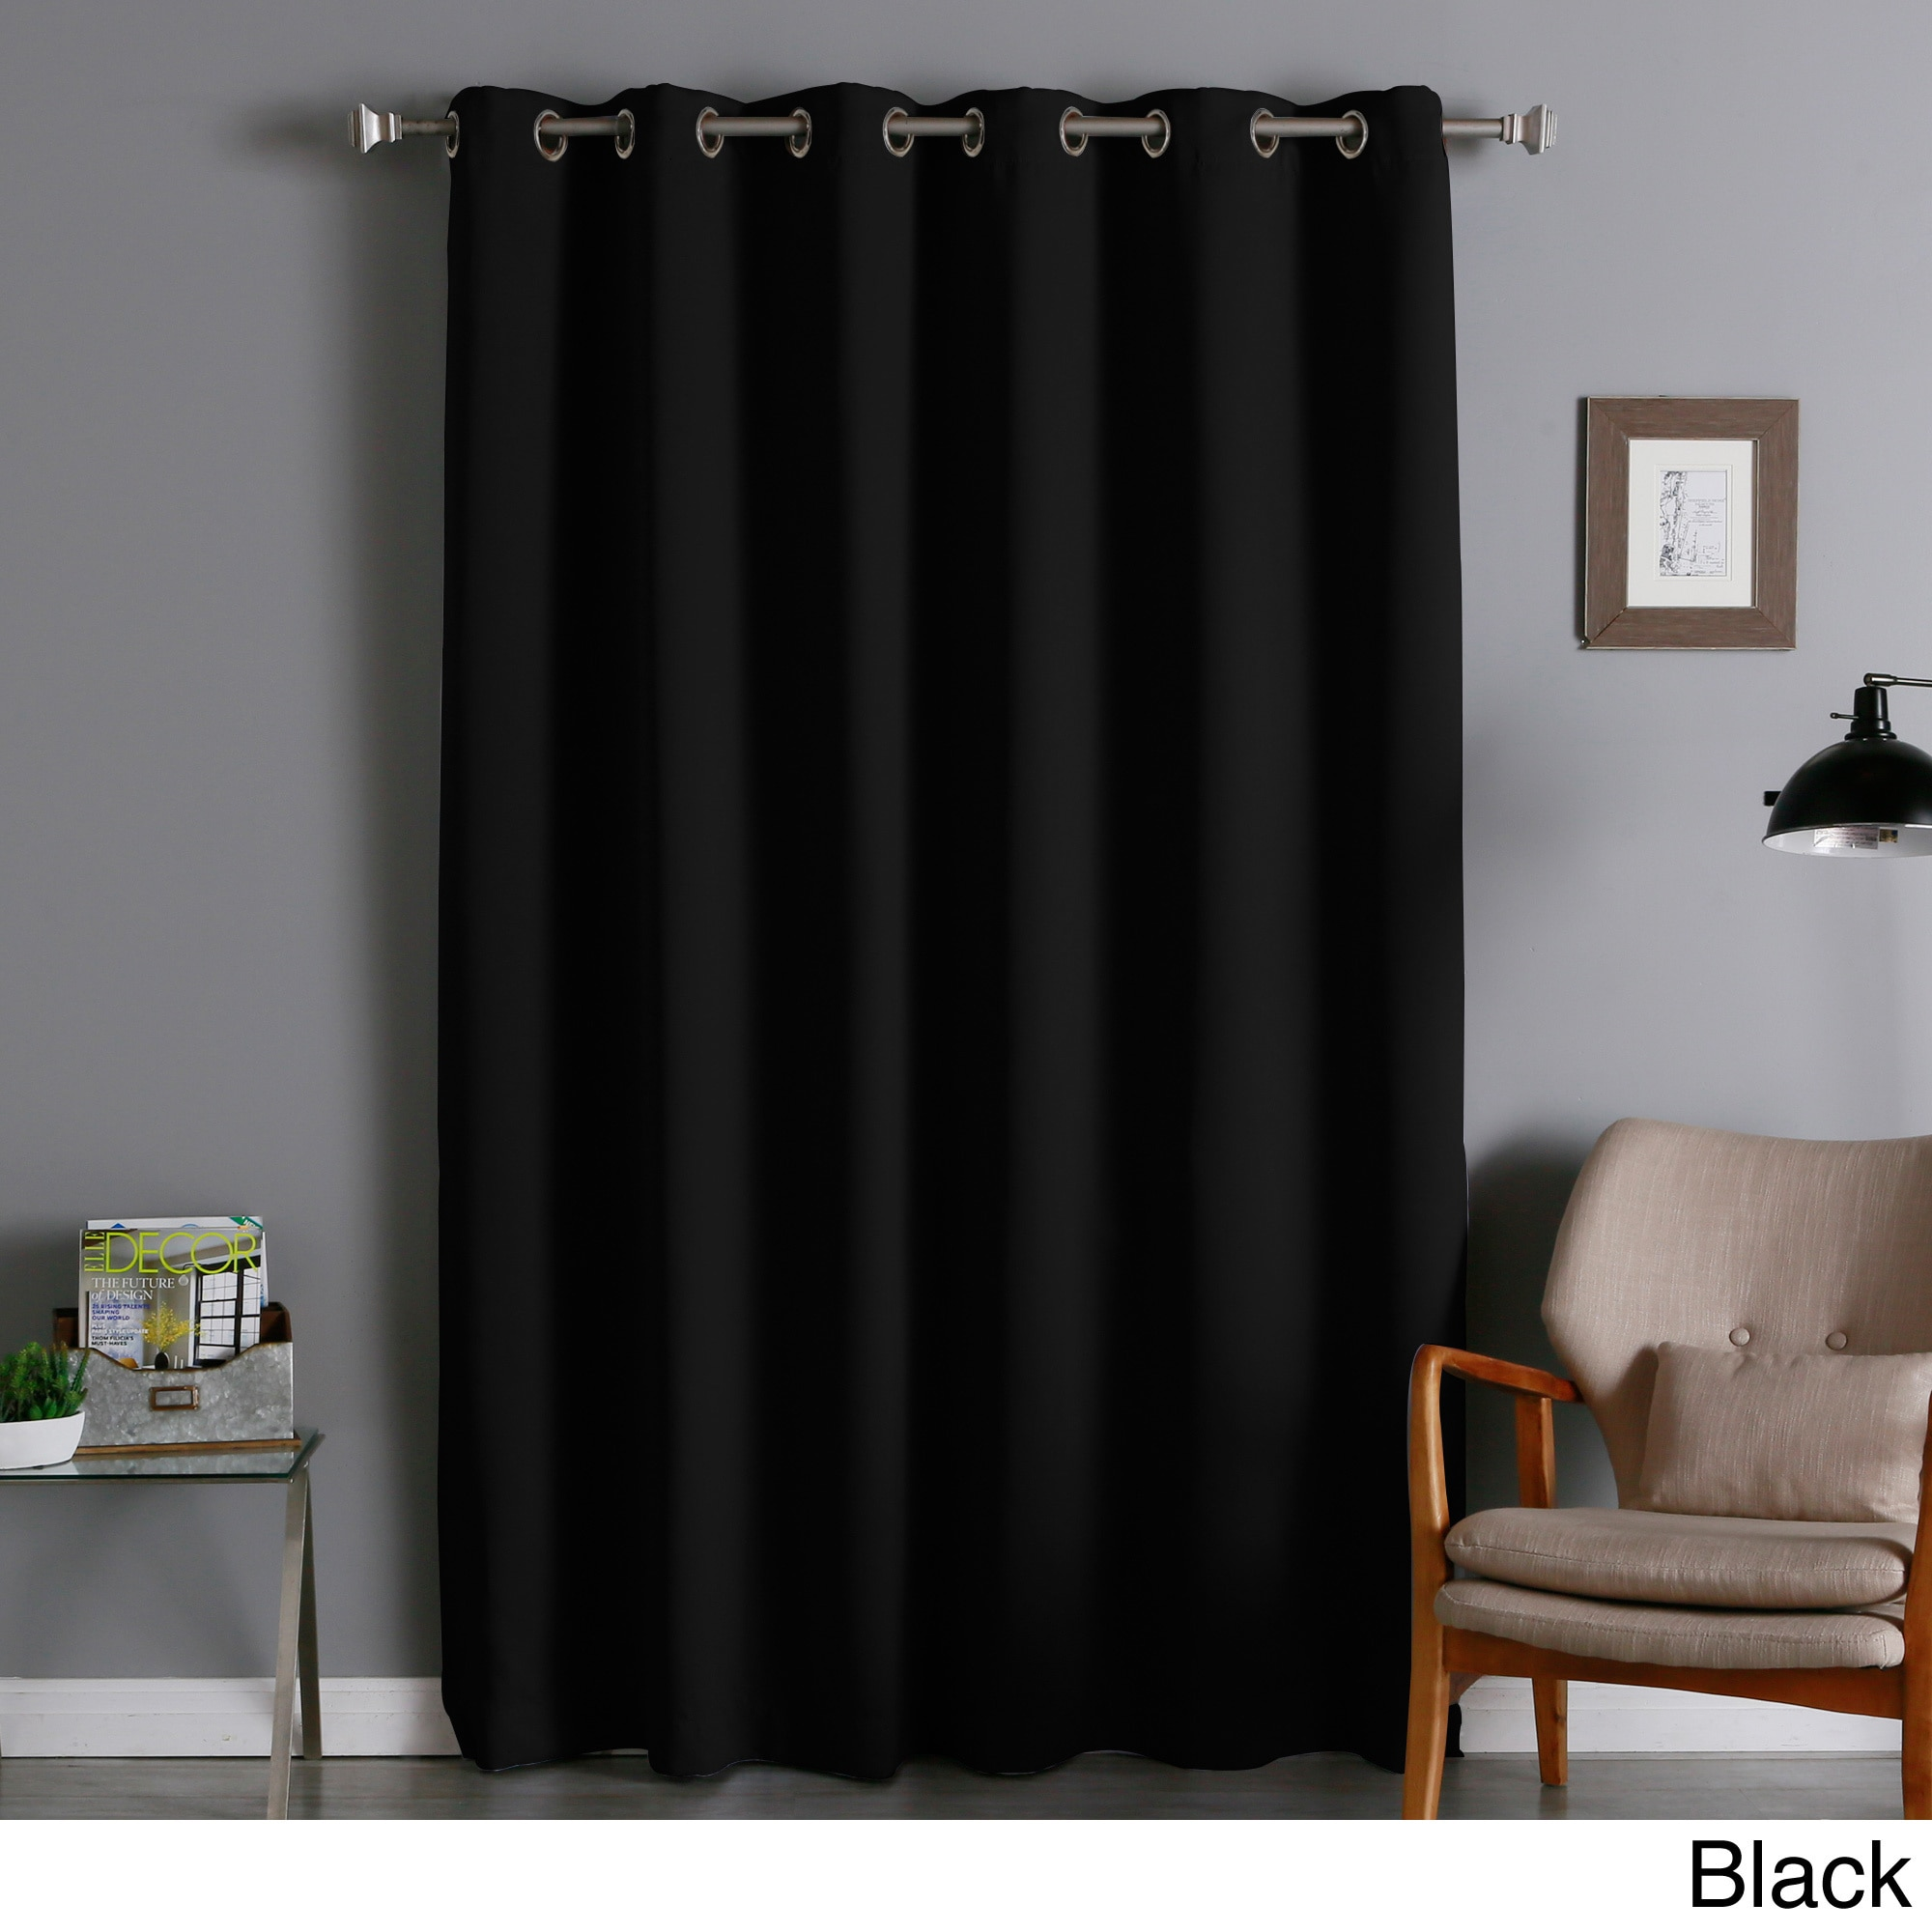 94 Inch Blackout Curtains Aurora Home Extra Wide Thermal Insulated 84 Inch Blackout Curtain Panel